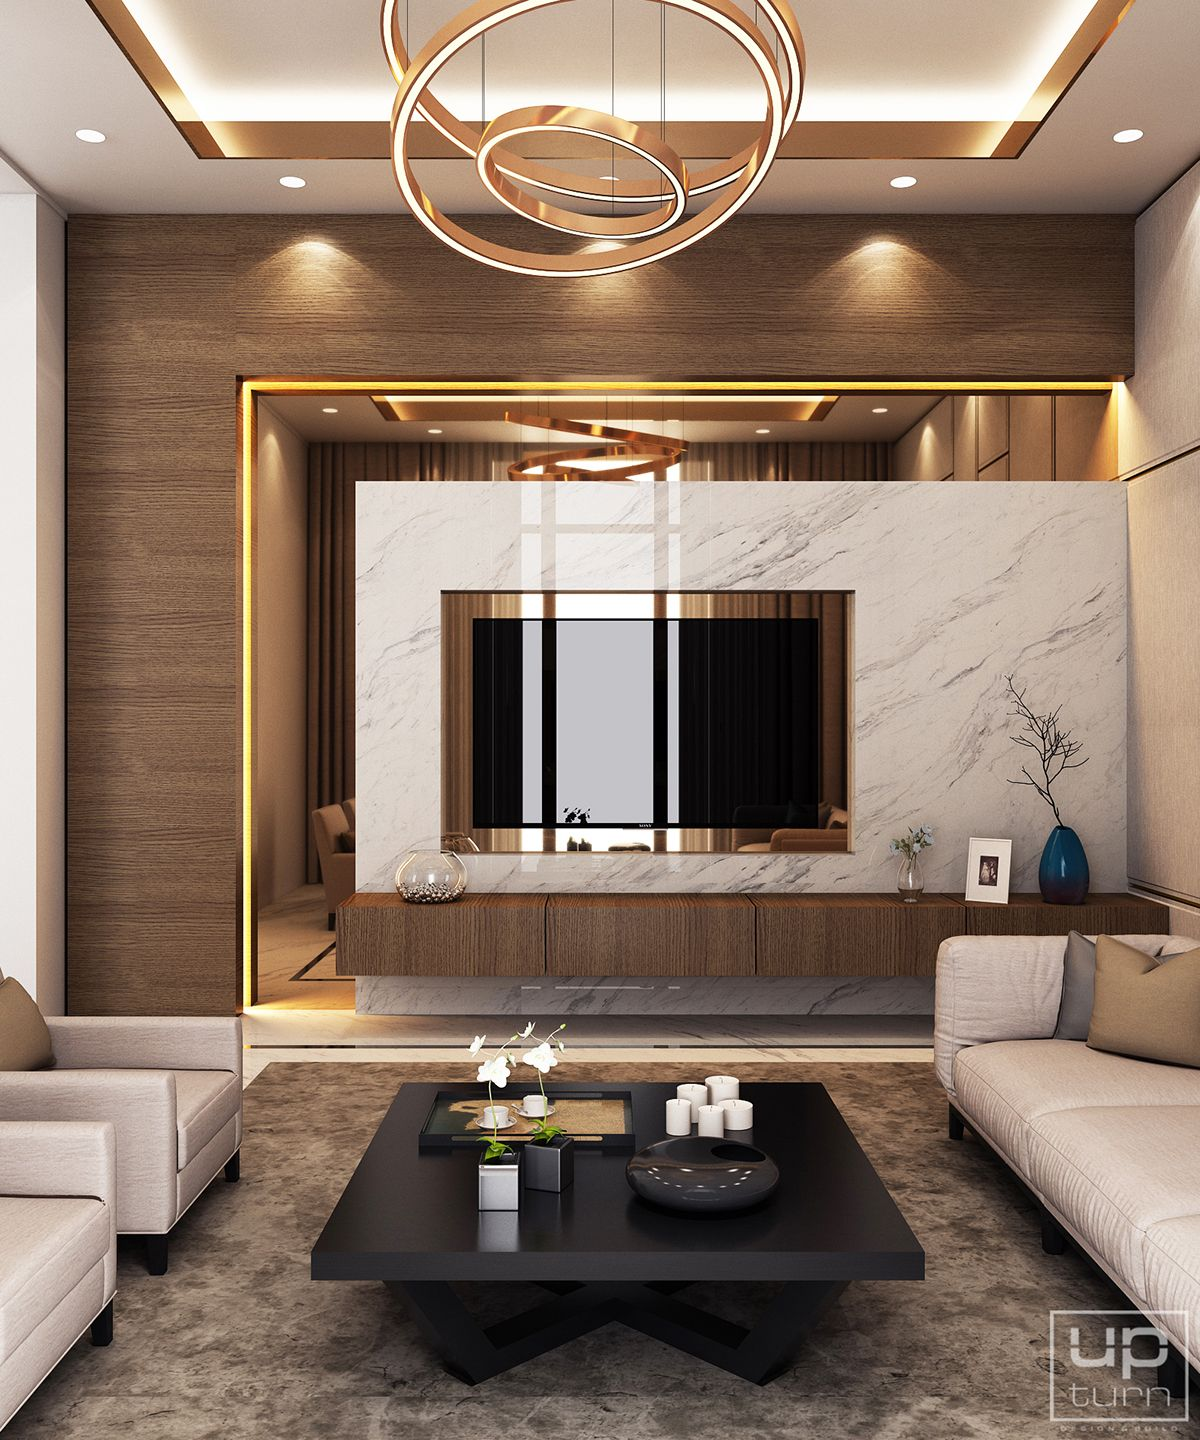 Modern Beautiful Bedrooms Interior Decoration Designs: Luxury Modern Villa - Qatar On Behance